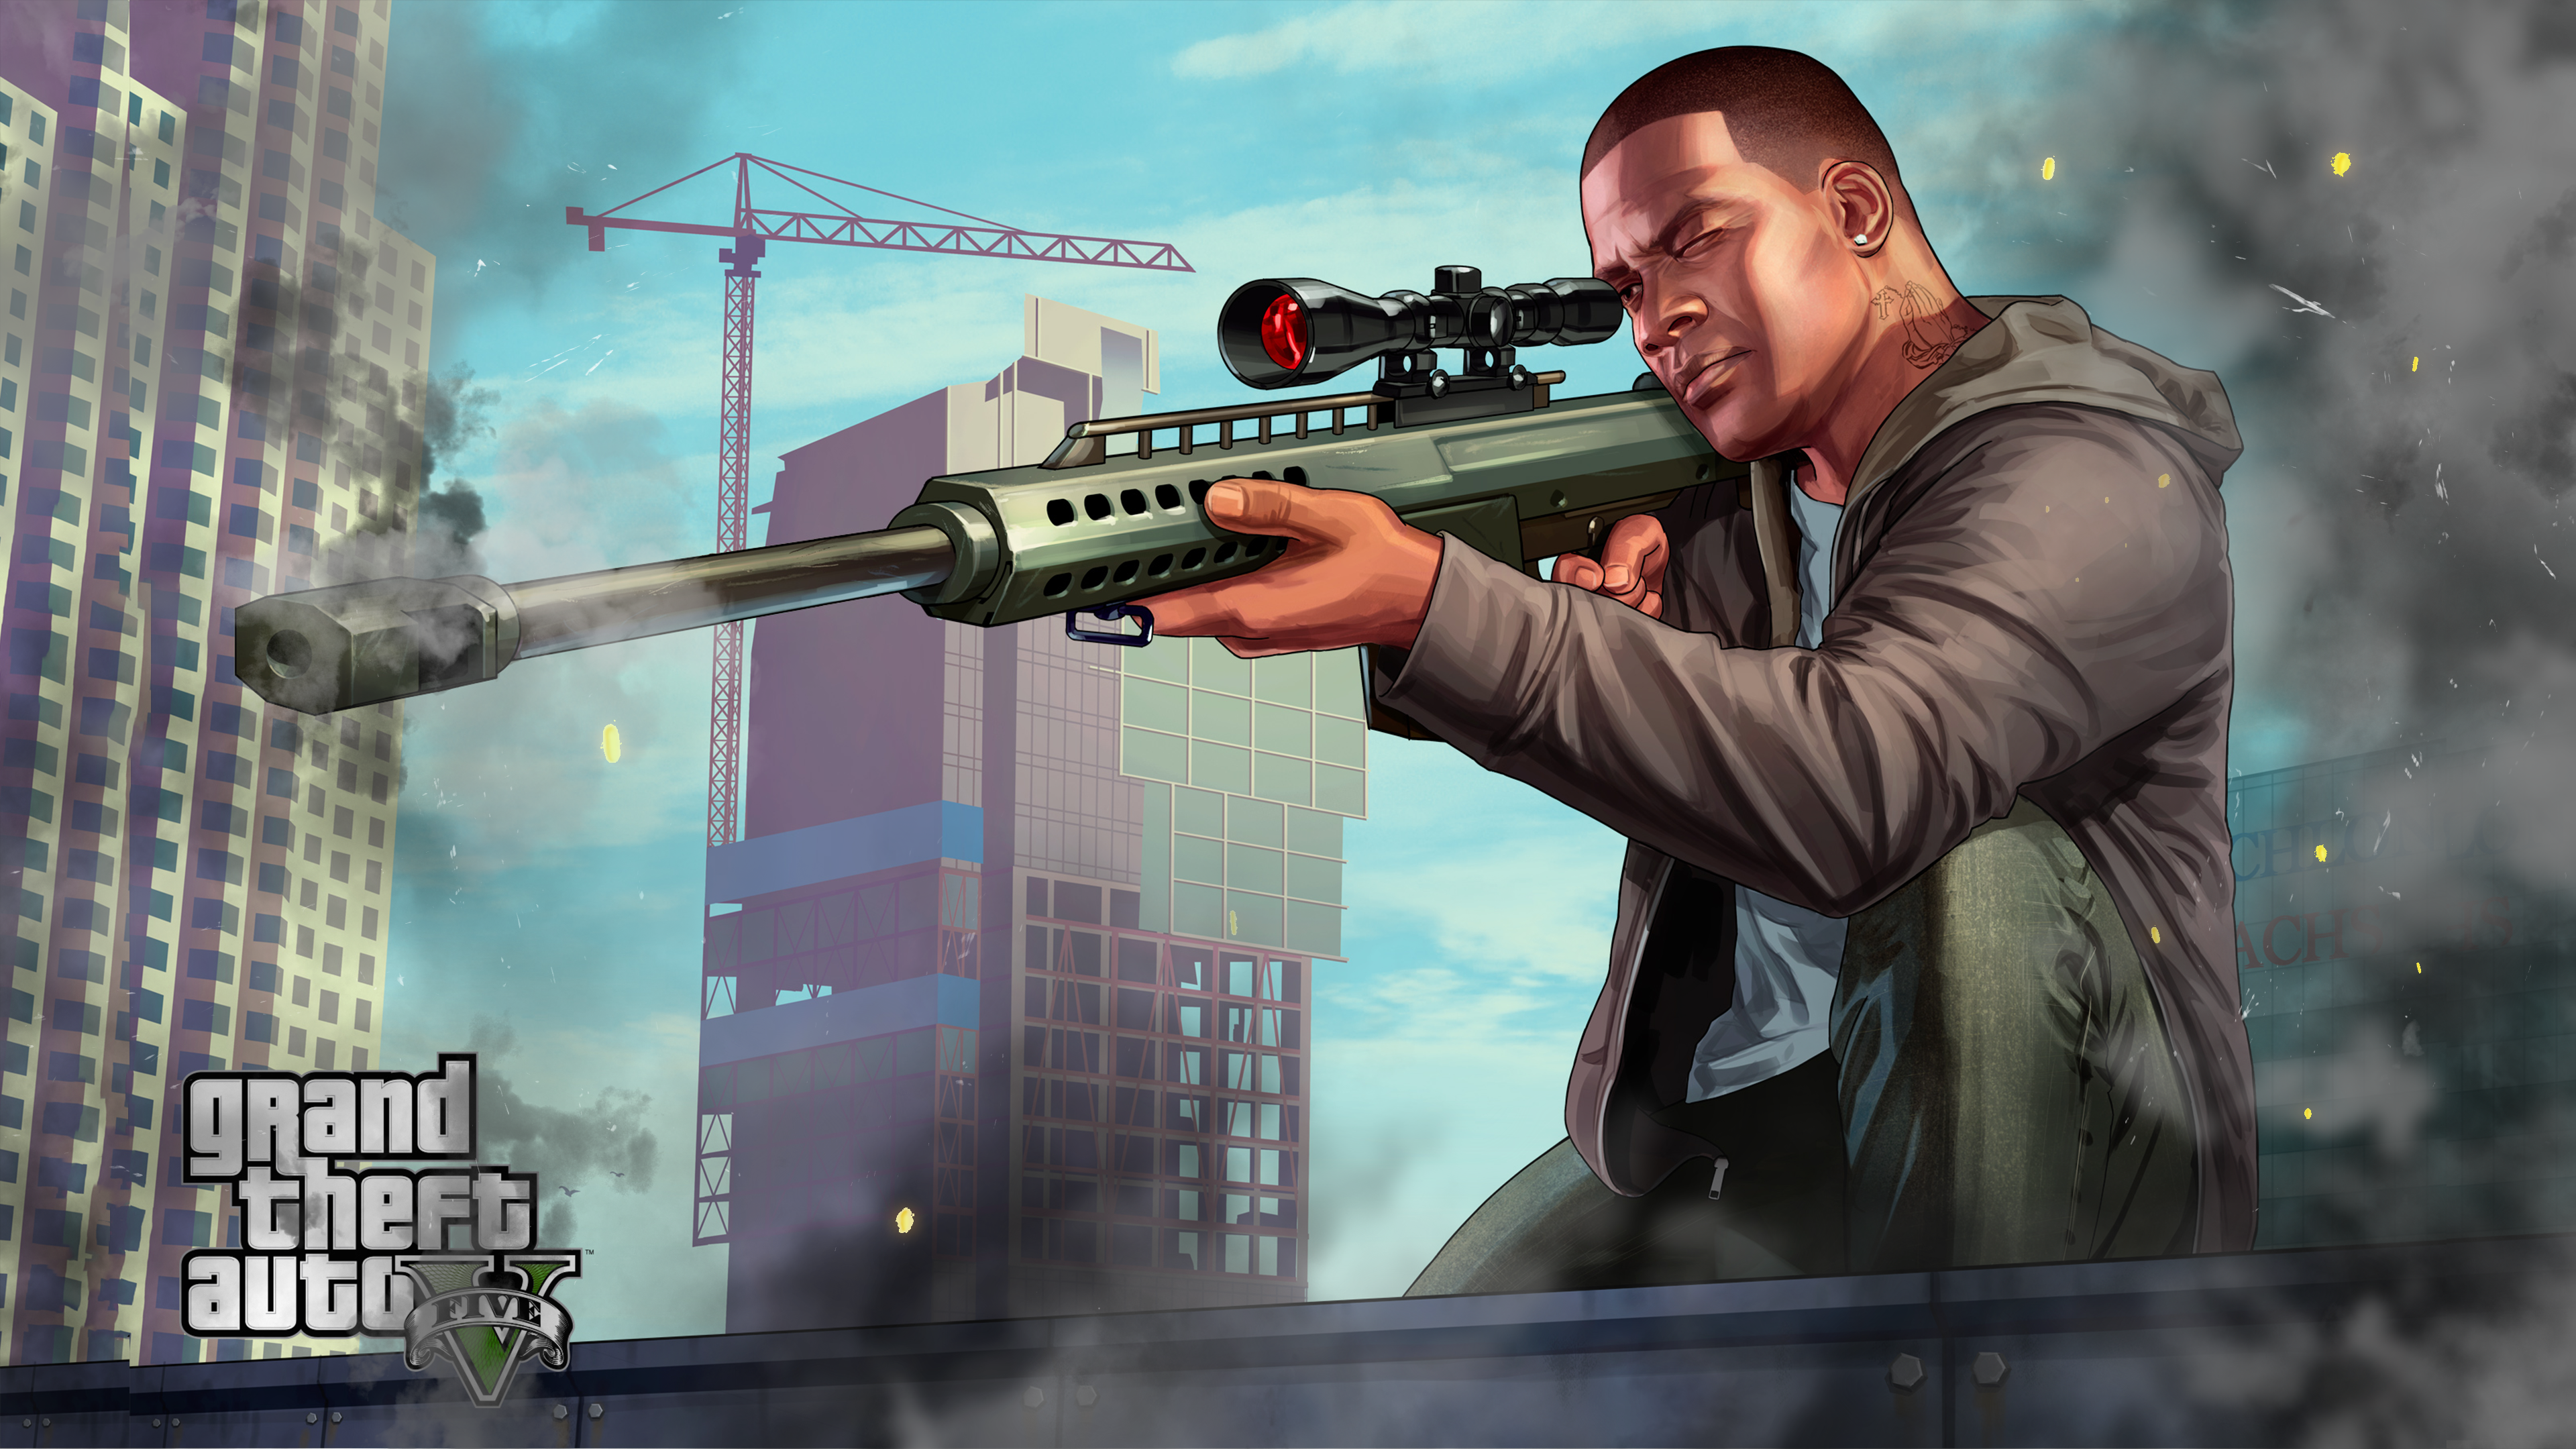 download gta 5 franklin sniping laptop wallpaper in uhd 4k 0232